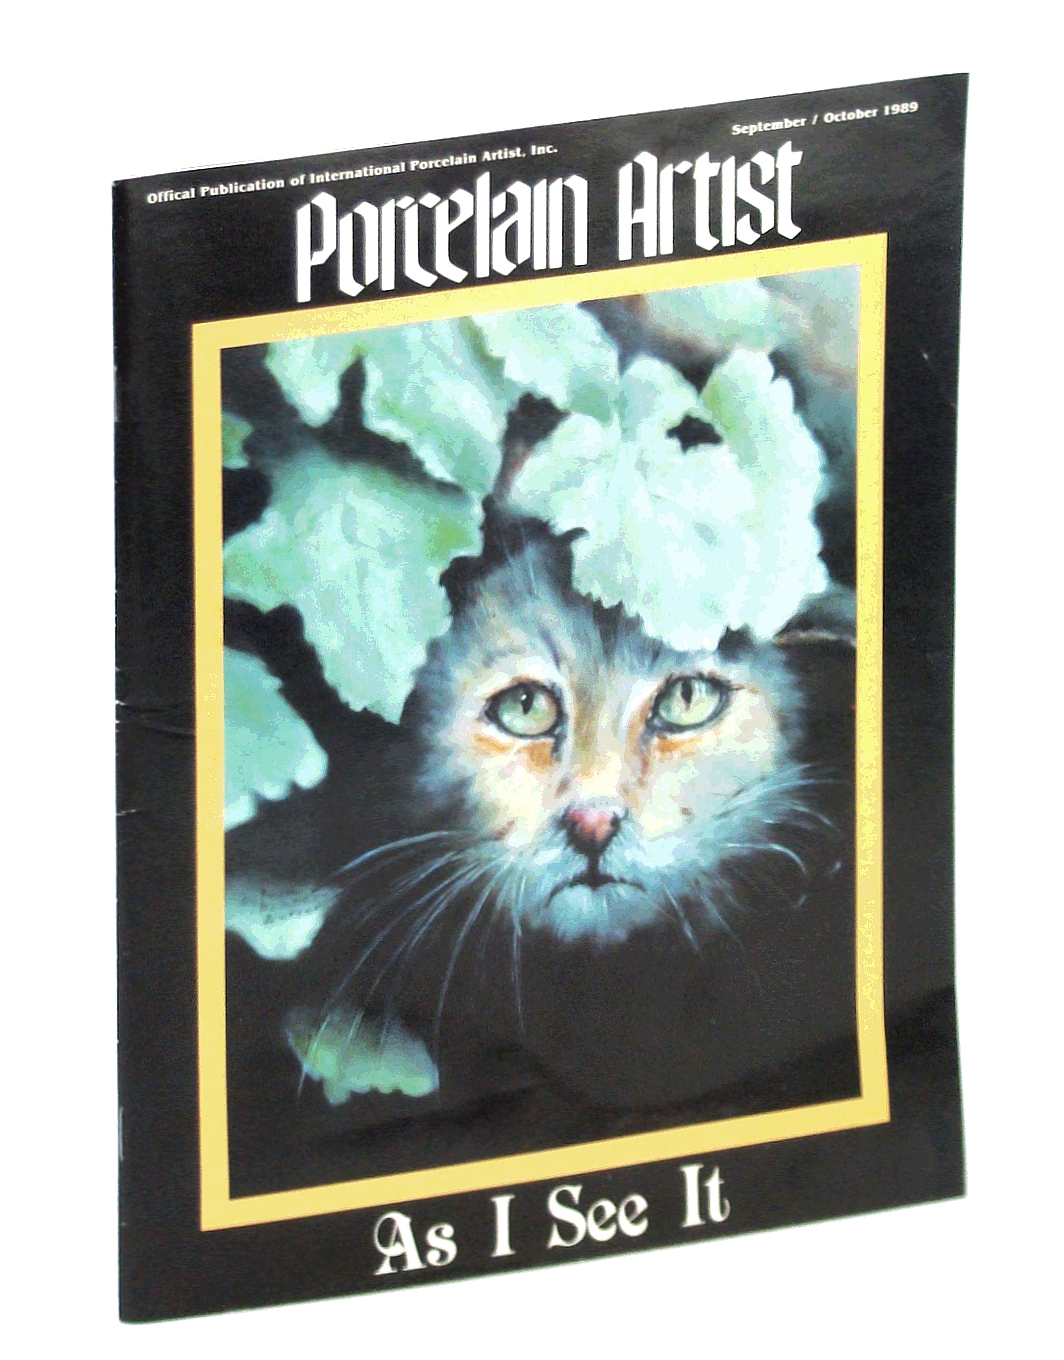 Image for Porcelain Artist [Magazine] September / October [Sept. / Oct.] 1989 - As I See It